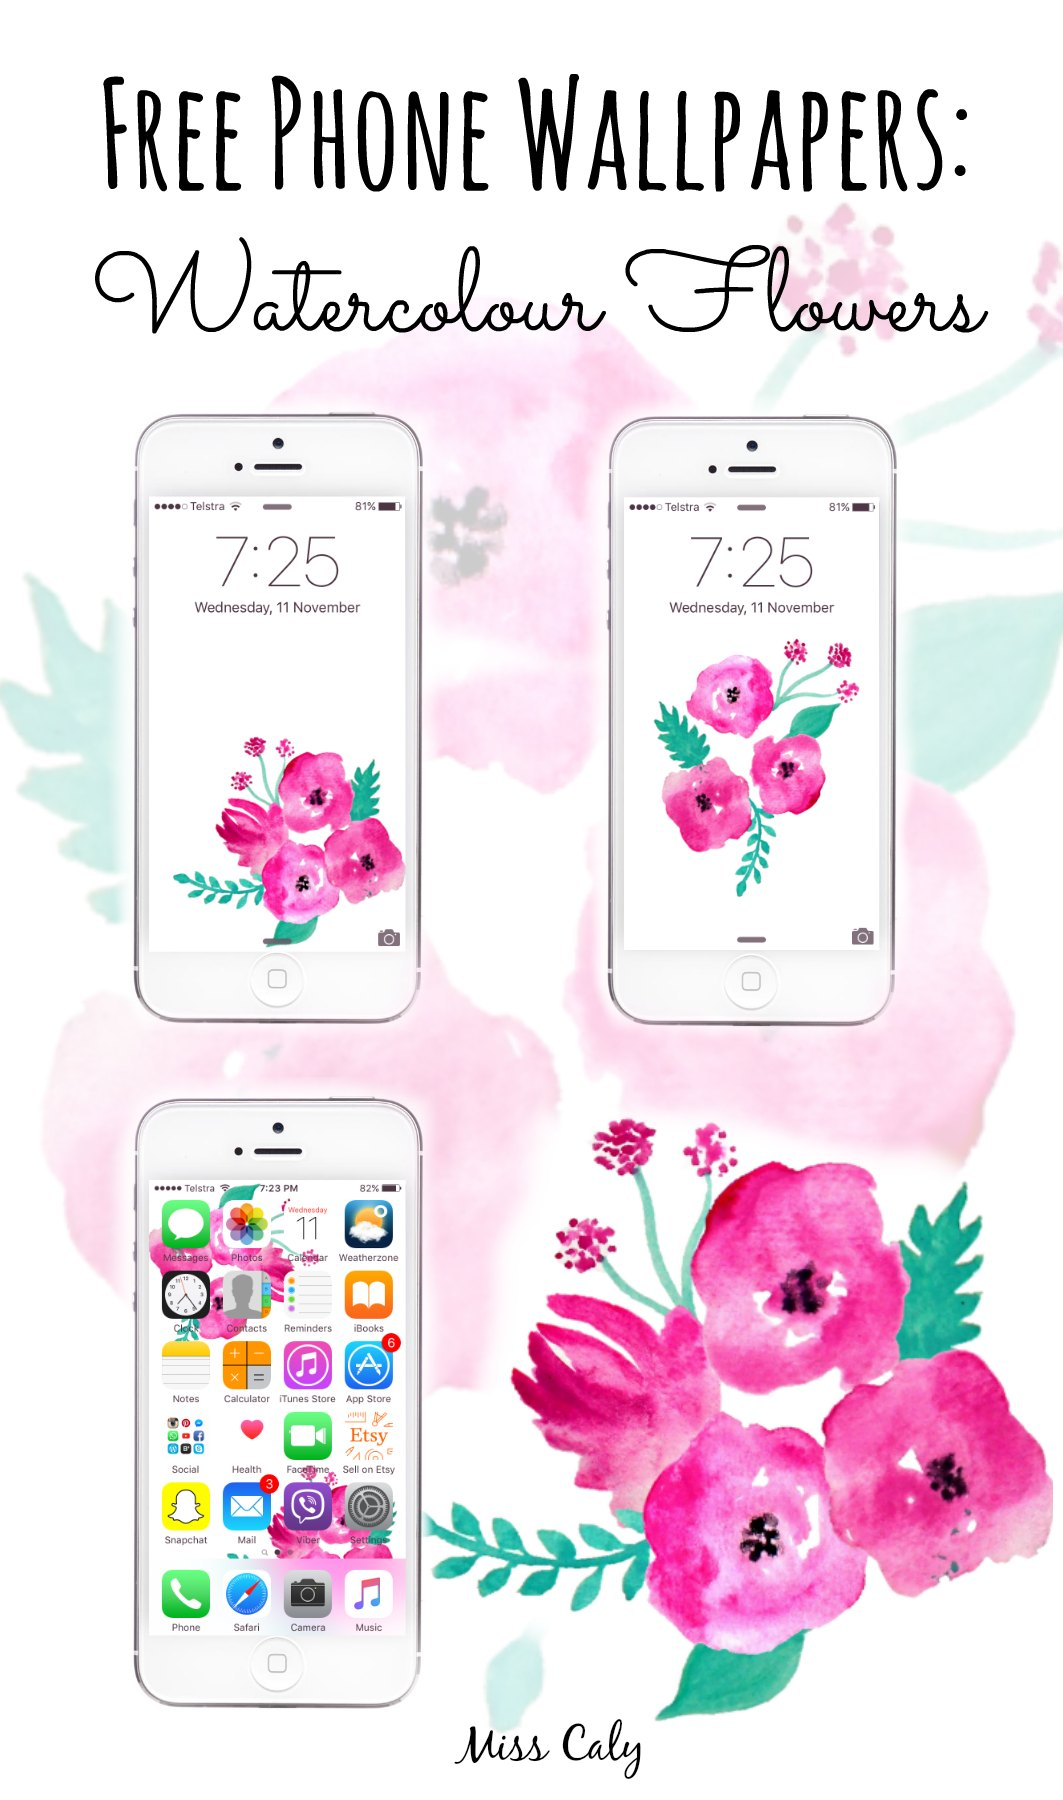 Free Phone Wallpapers - Watercolour Flowers! By Miss Caly